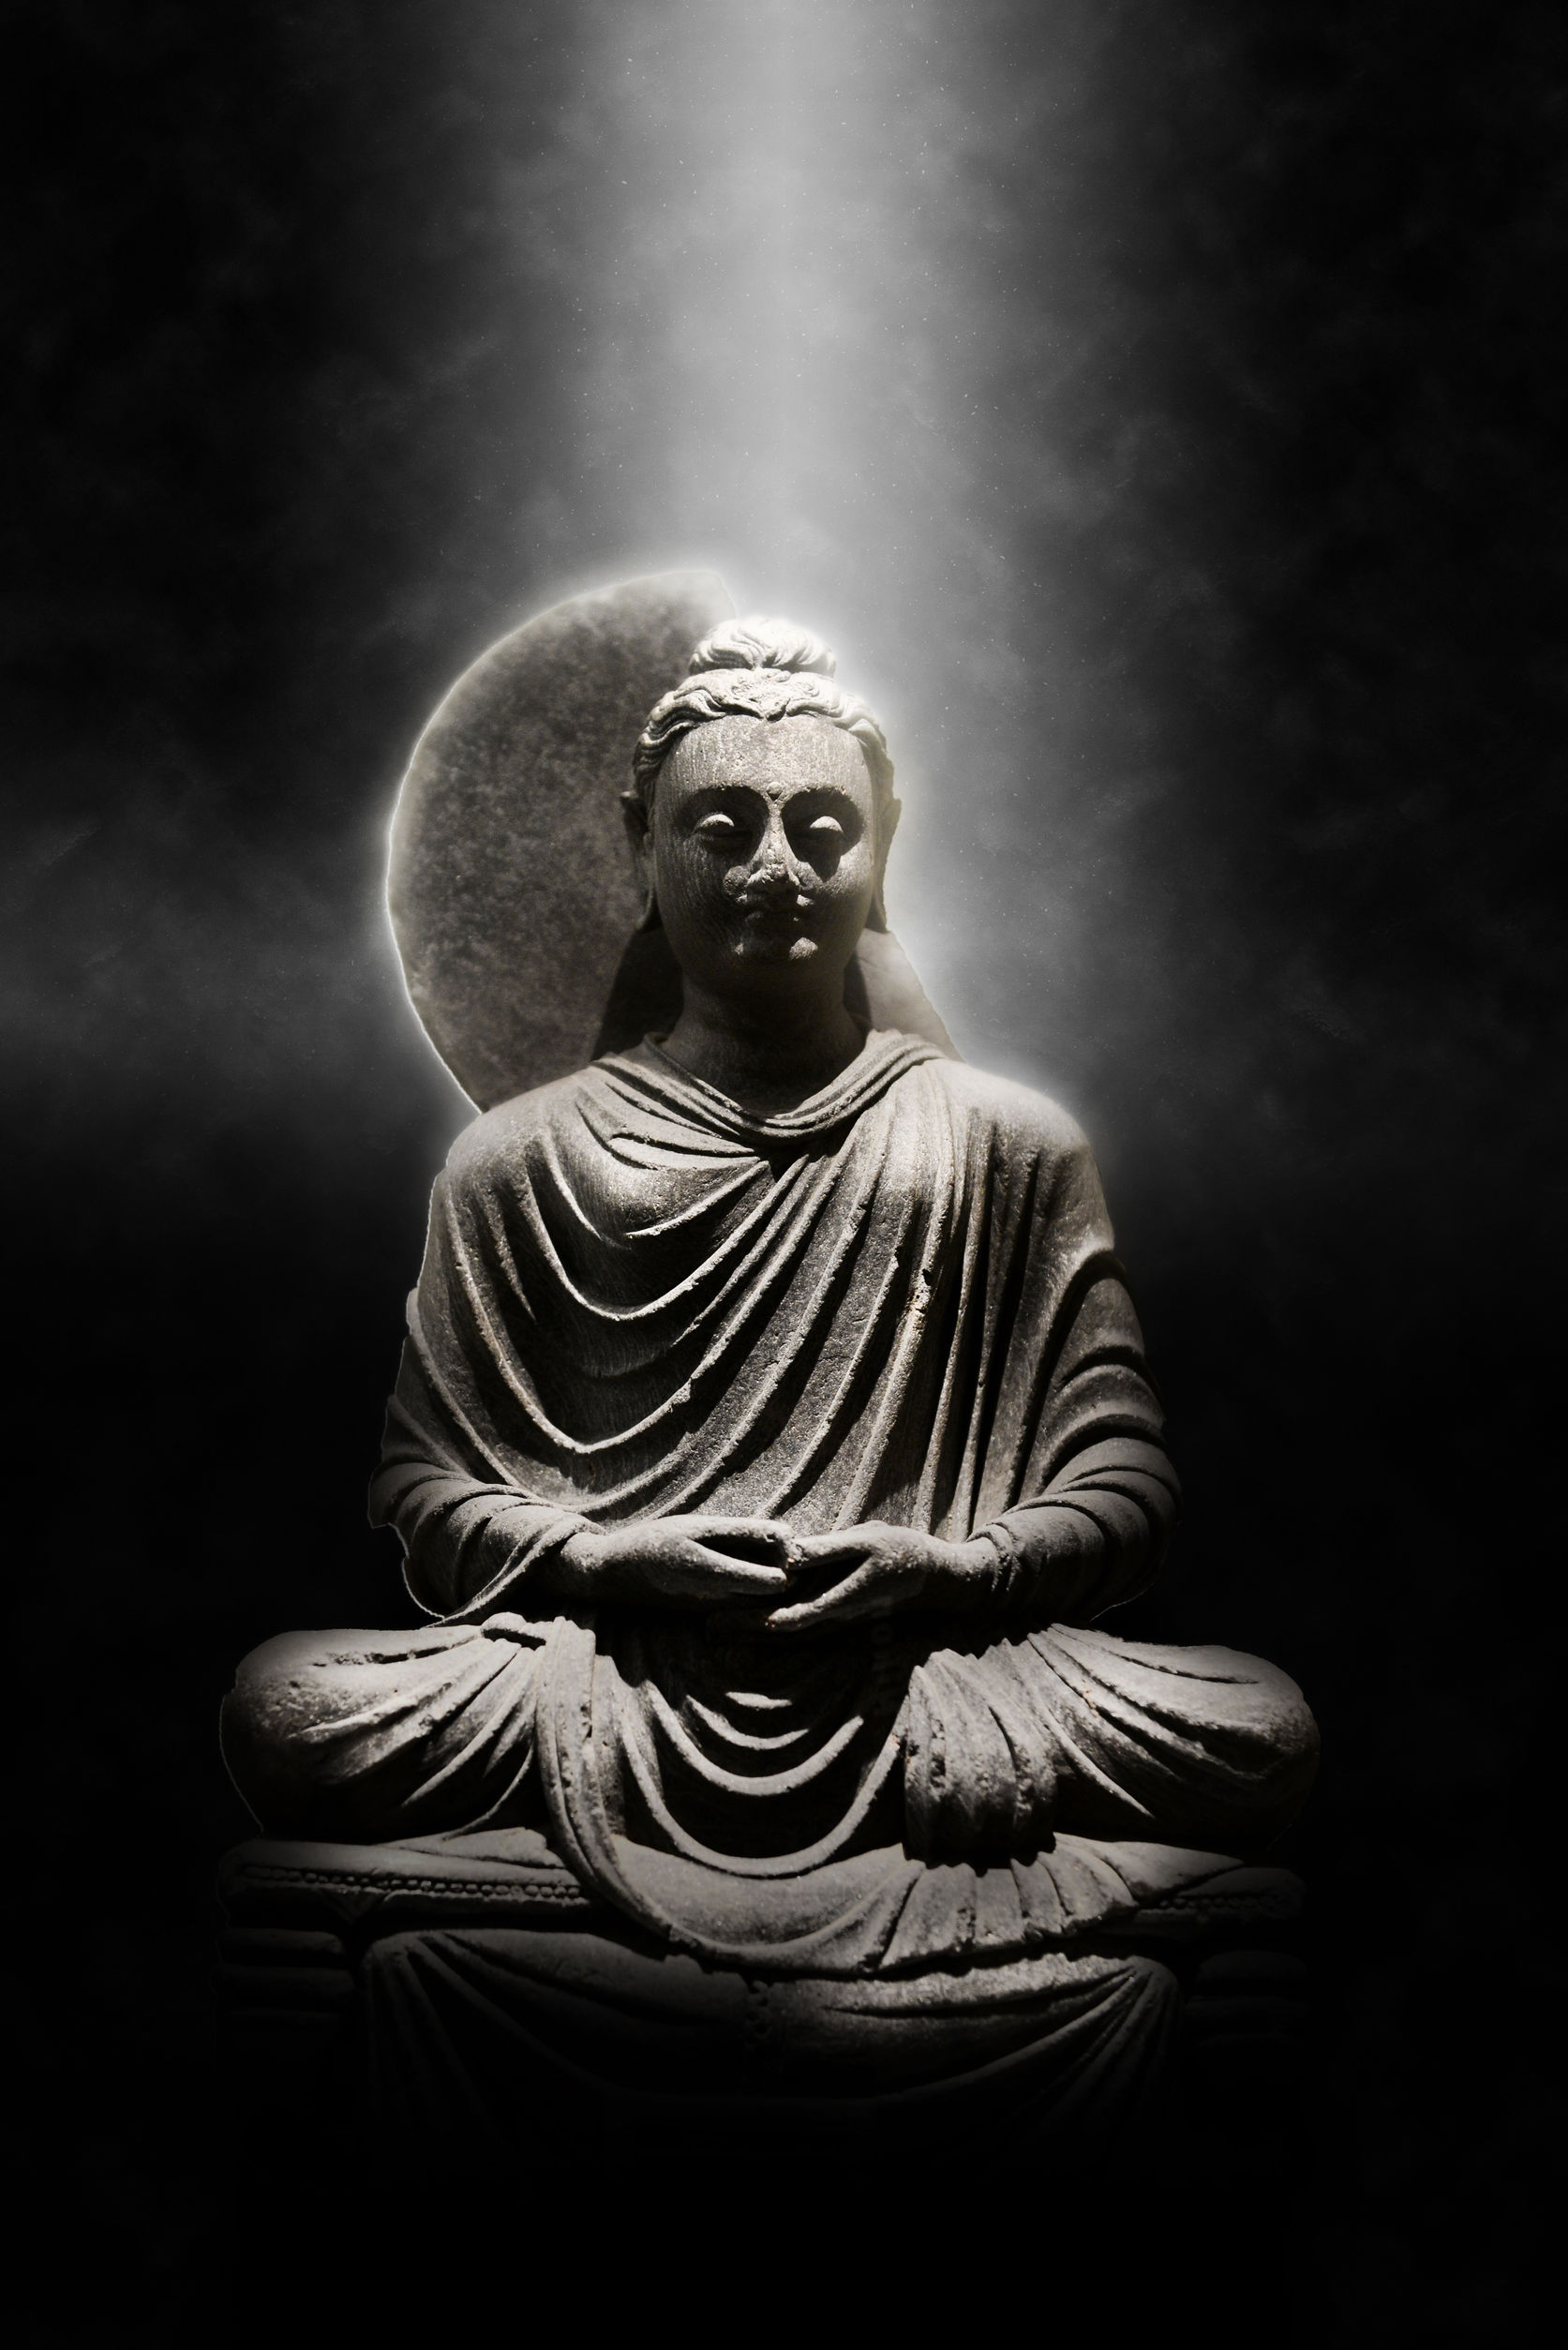 41026822 - full length stone carved seated buddha statue dramatically lit from above on dark background, meditation and spirituality concept still life image